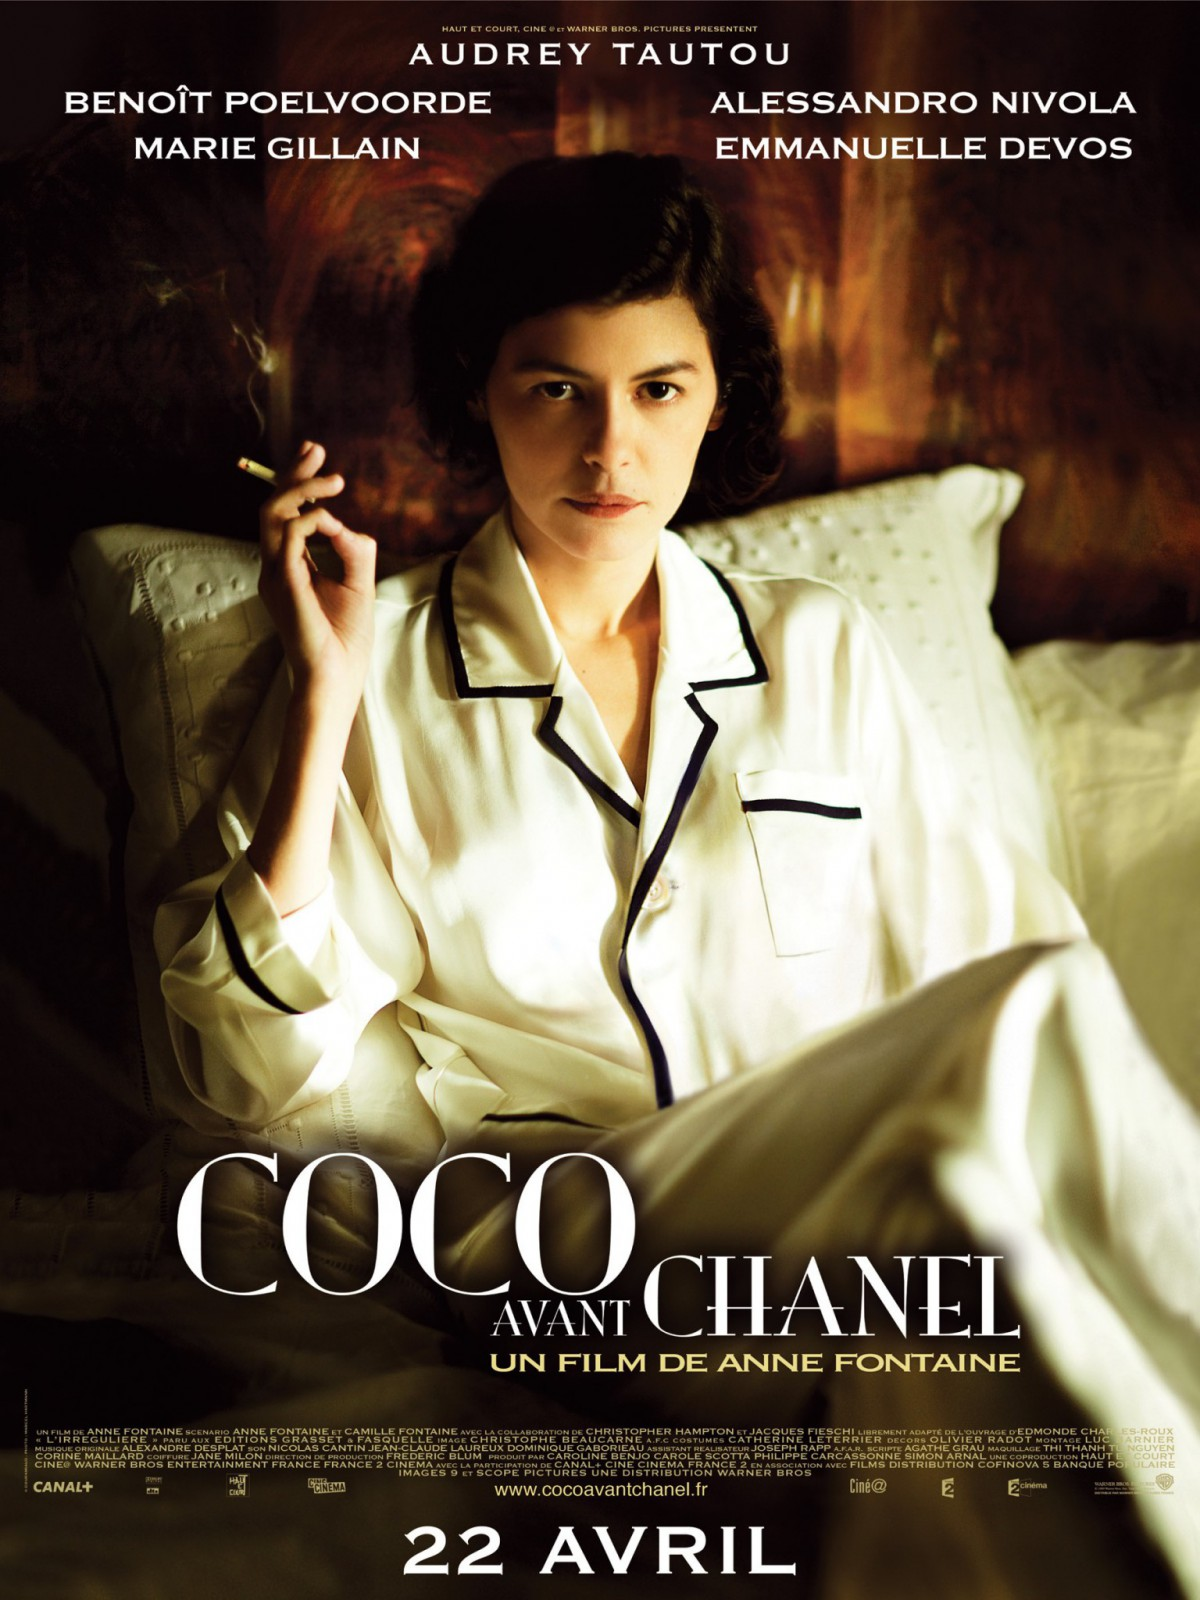 Coco foer Chanel